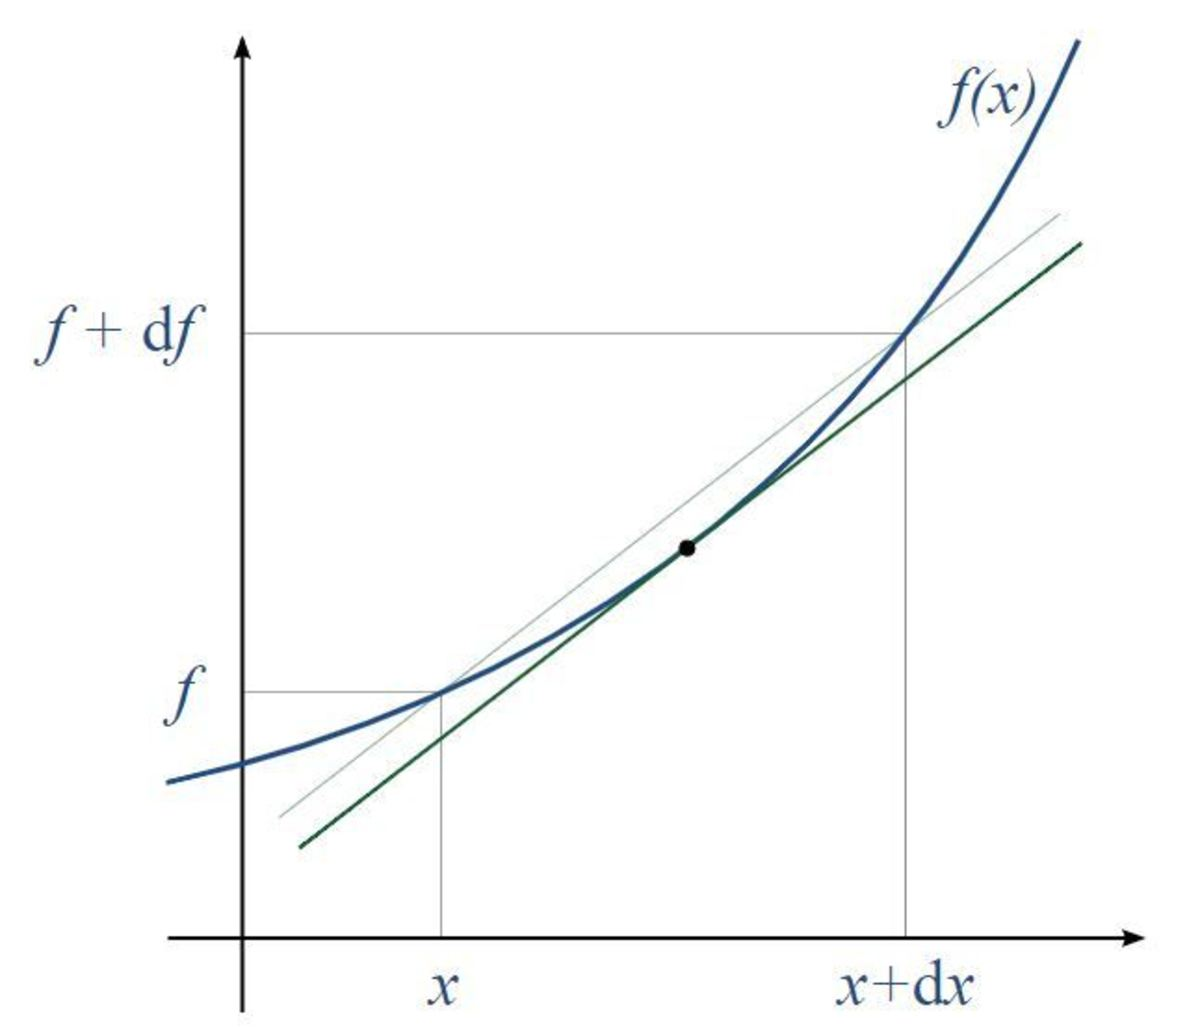 math-what-is-the-derivative-of-a-function-and-how-to-calculate-it